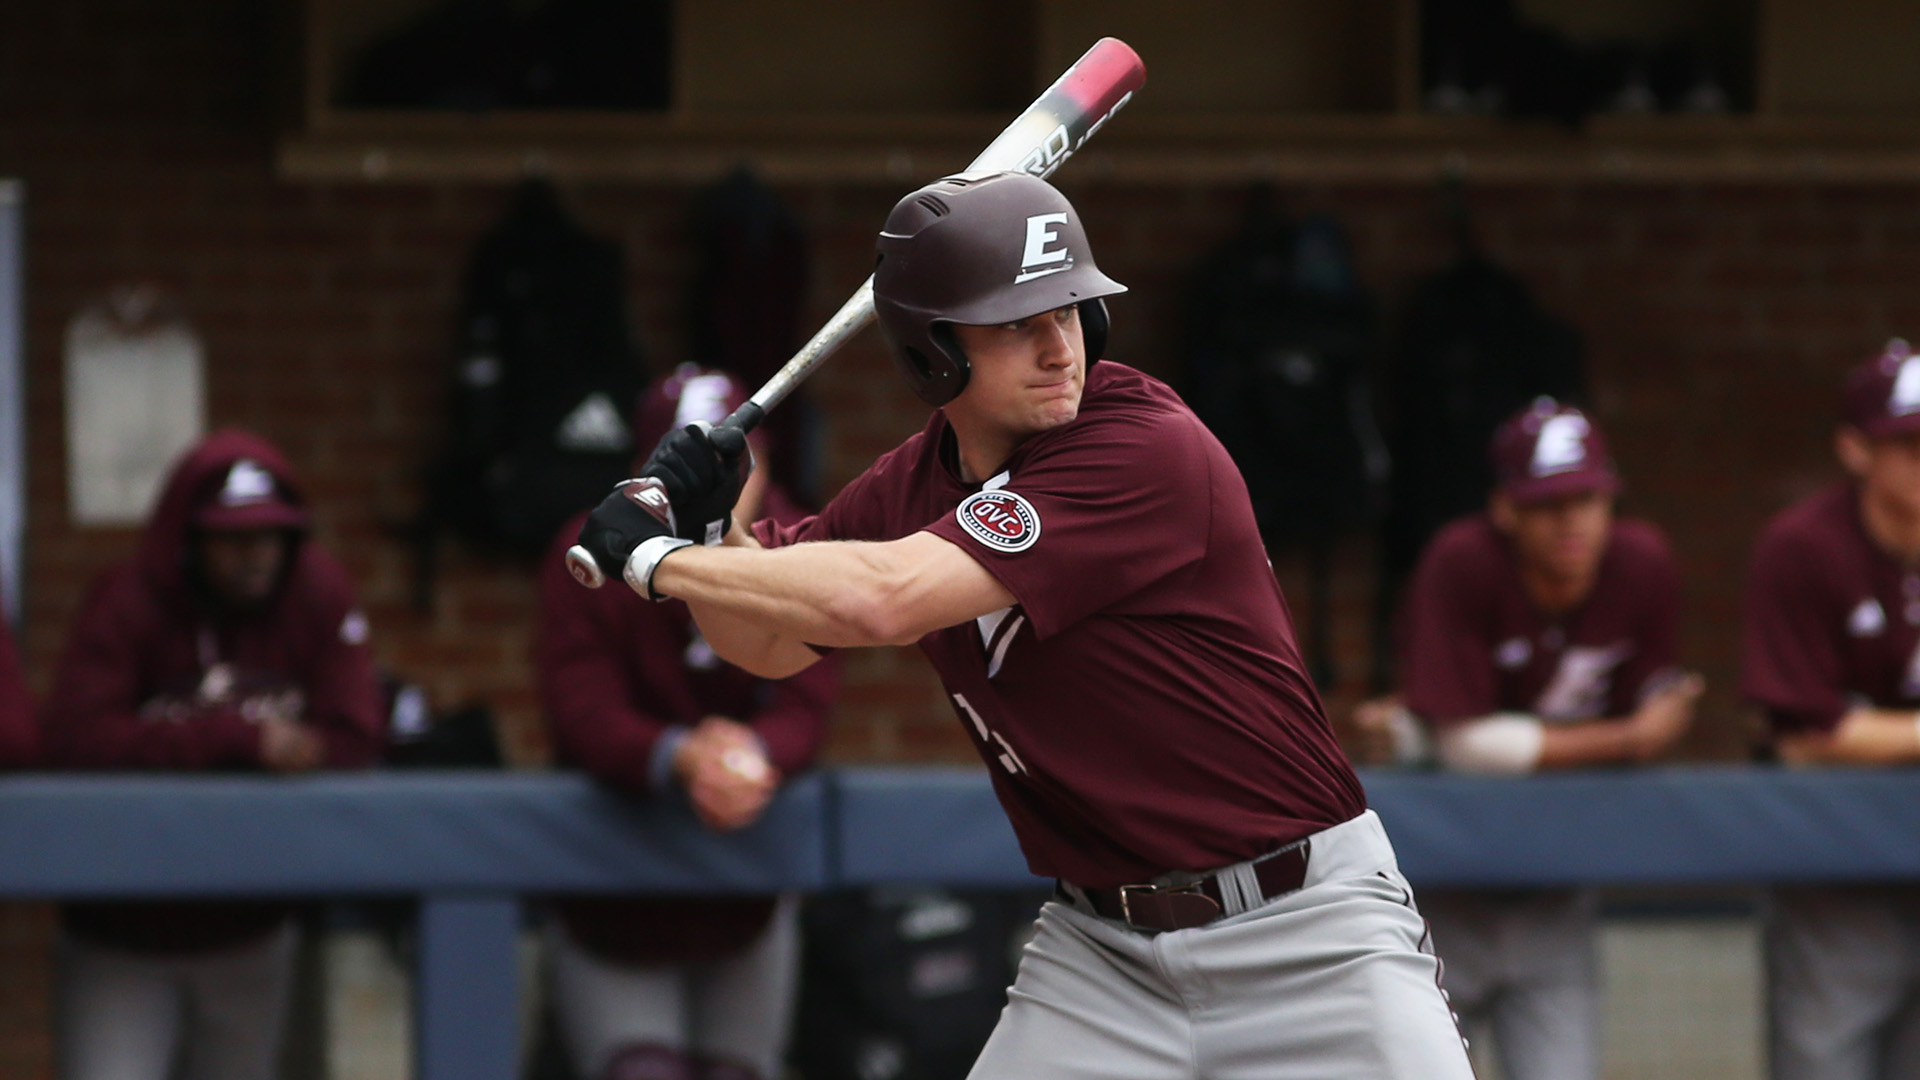 Former Ontario Blue Jay Nick Howie (Oakville, Ont.), who played for Eastern Kentucky, was named to the Google Cloud Academic All-American First Team. Photo: Eastern Kentucky Athletics